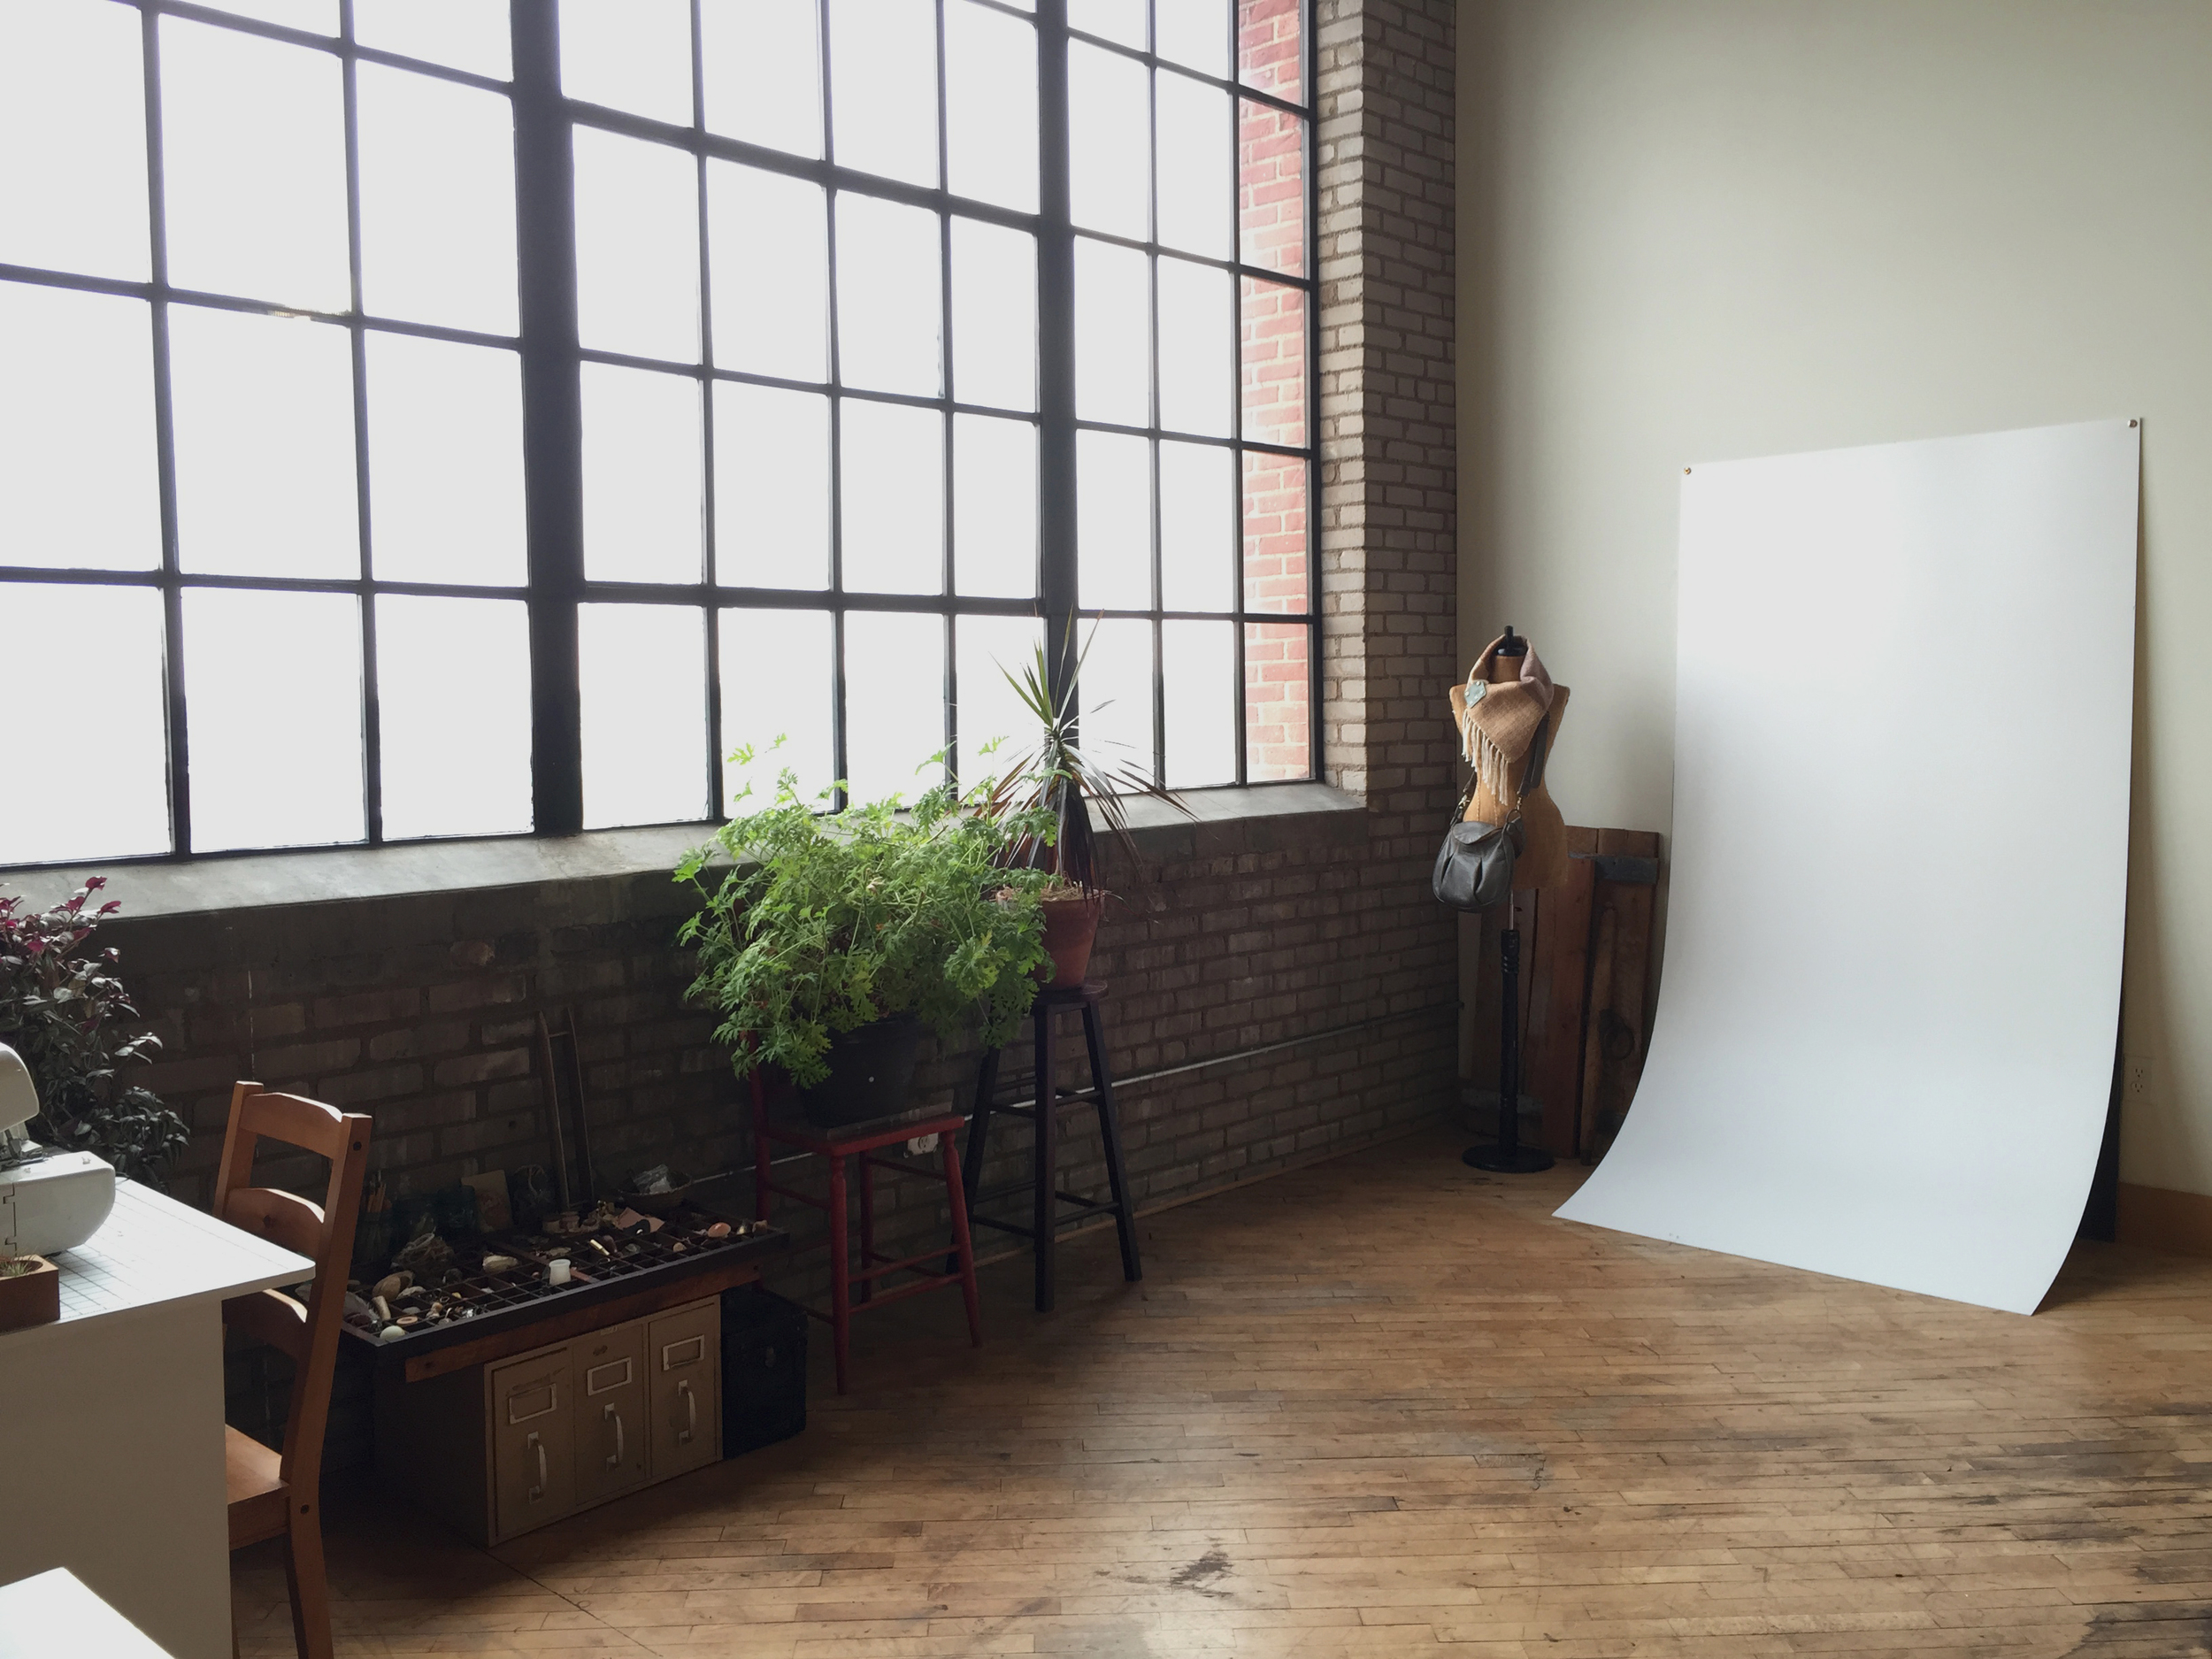 Want to photograph here? We're booking appointments for full or half days starting March 1st- come to our open house for more information and to reserve your time!